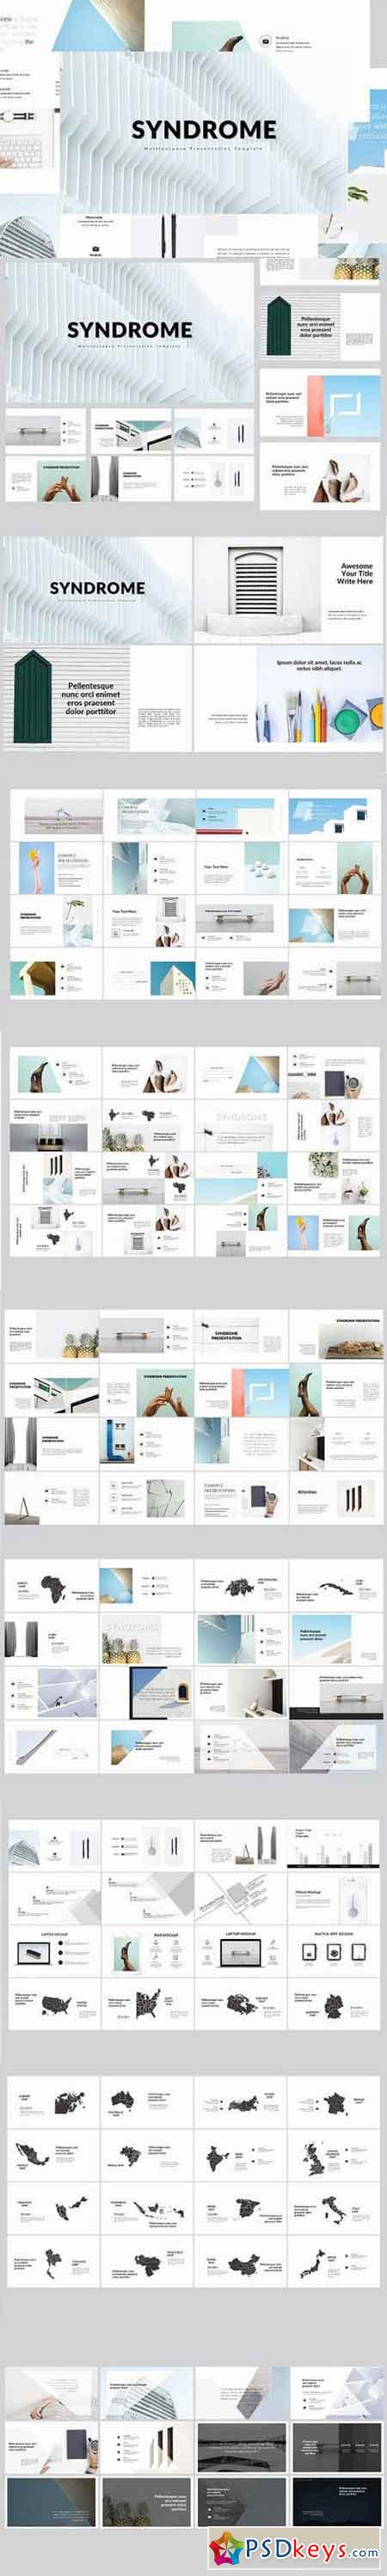 syndrome minimal keynote template 1237477 free download photoshop vector stock image via. Black Bedroom Furniture Sets. Home Design Ideas